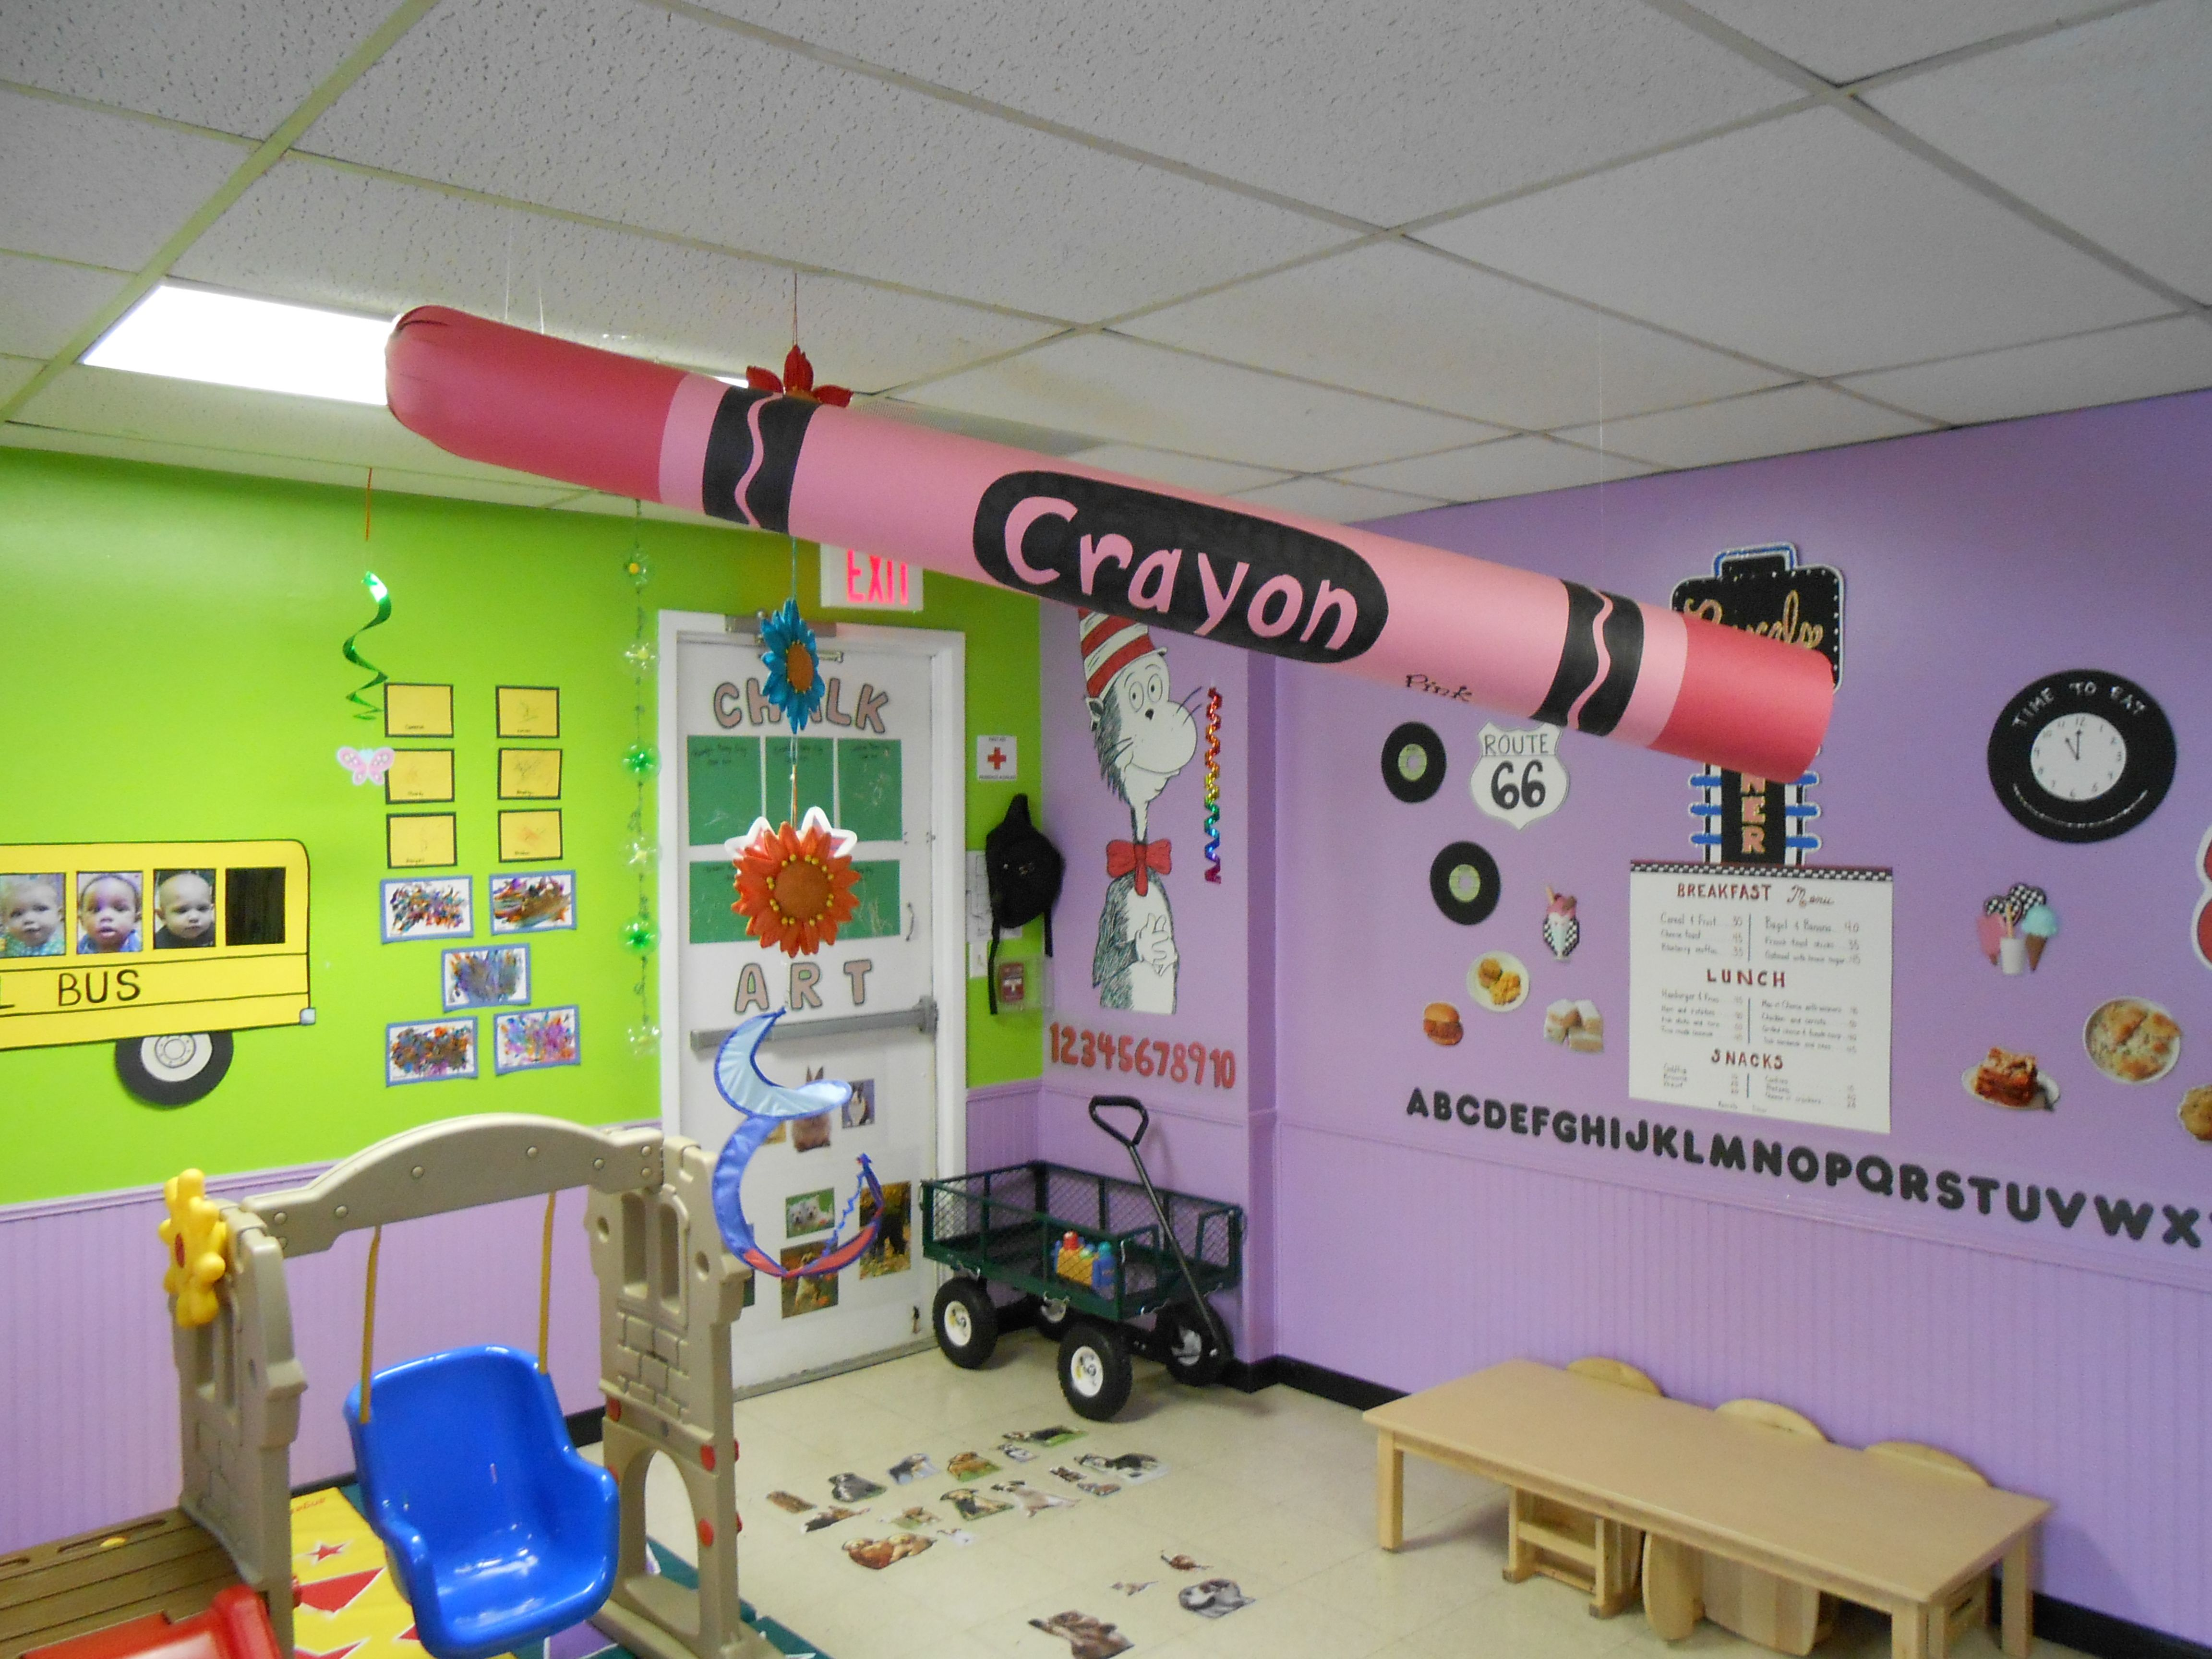 4 Foot Long Crayon Made From Construction Paper 3 D Object Back To School Theme Toddler